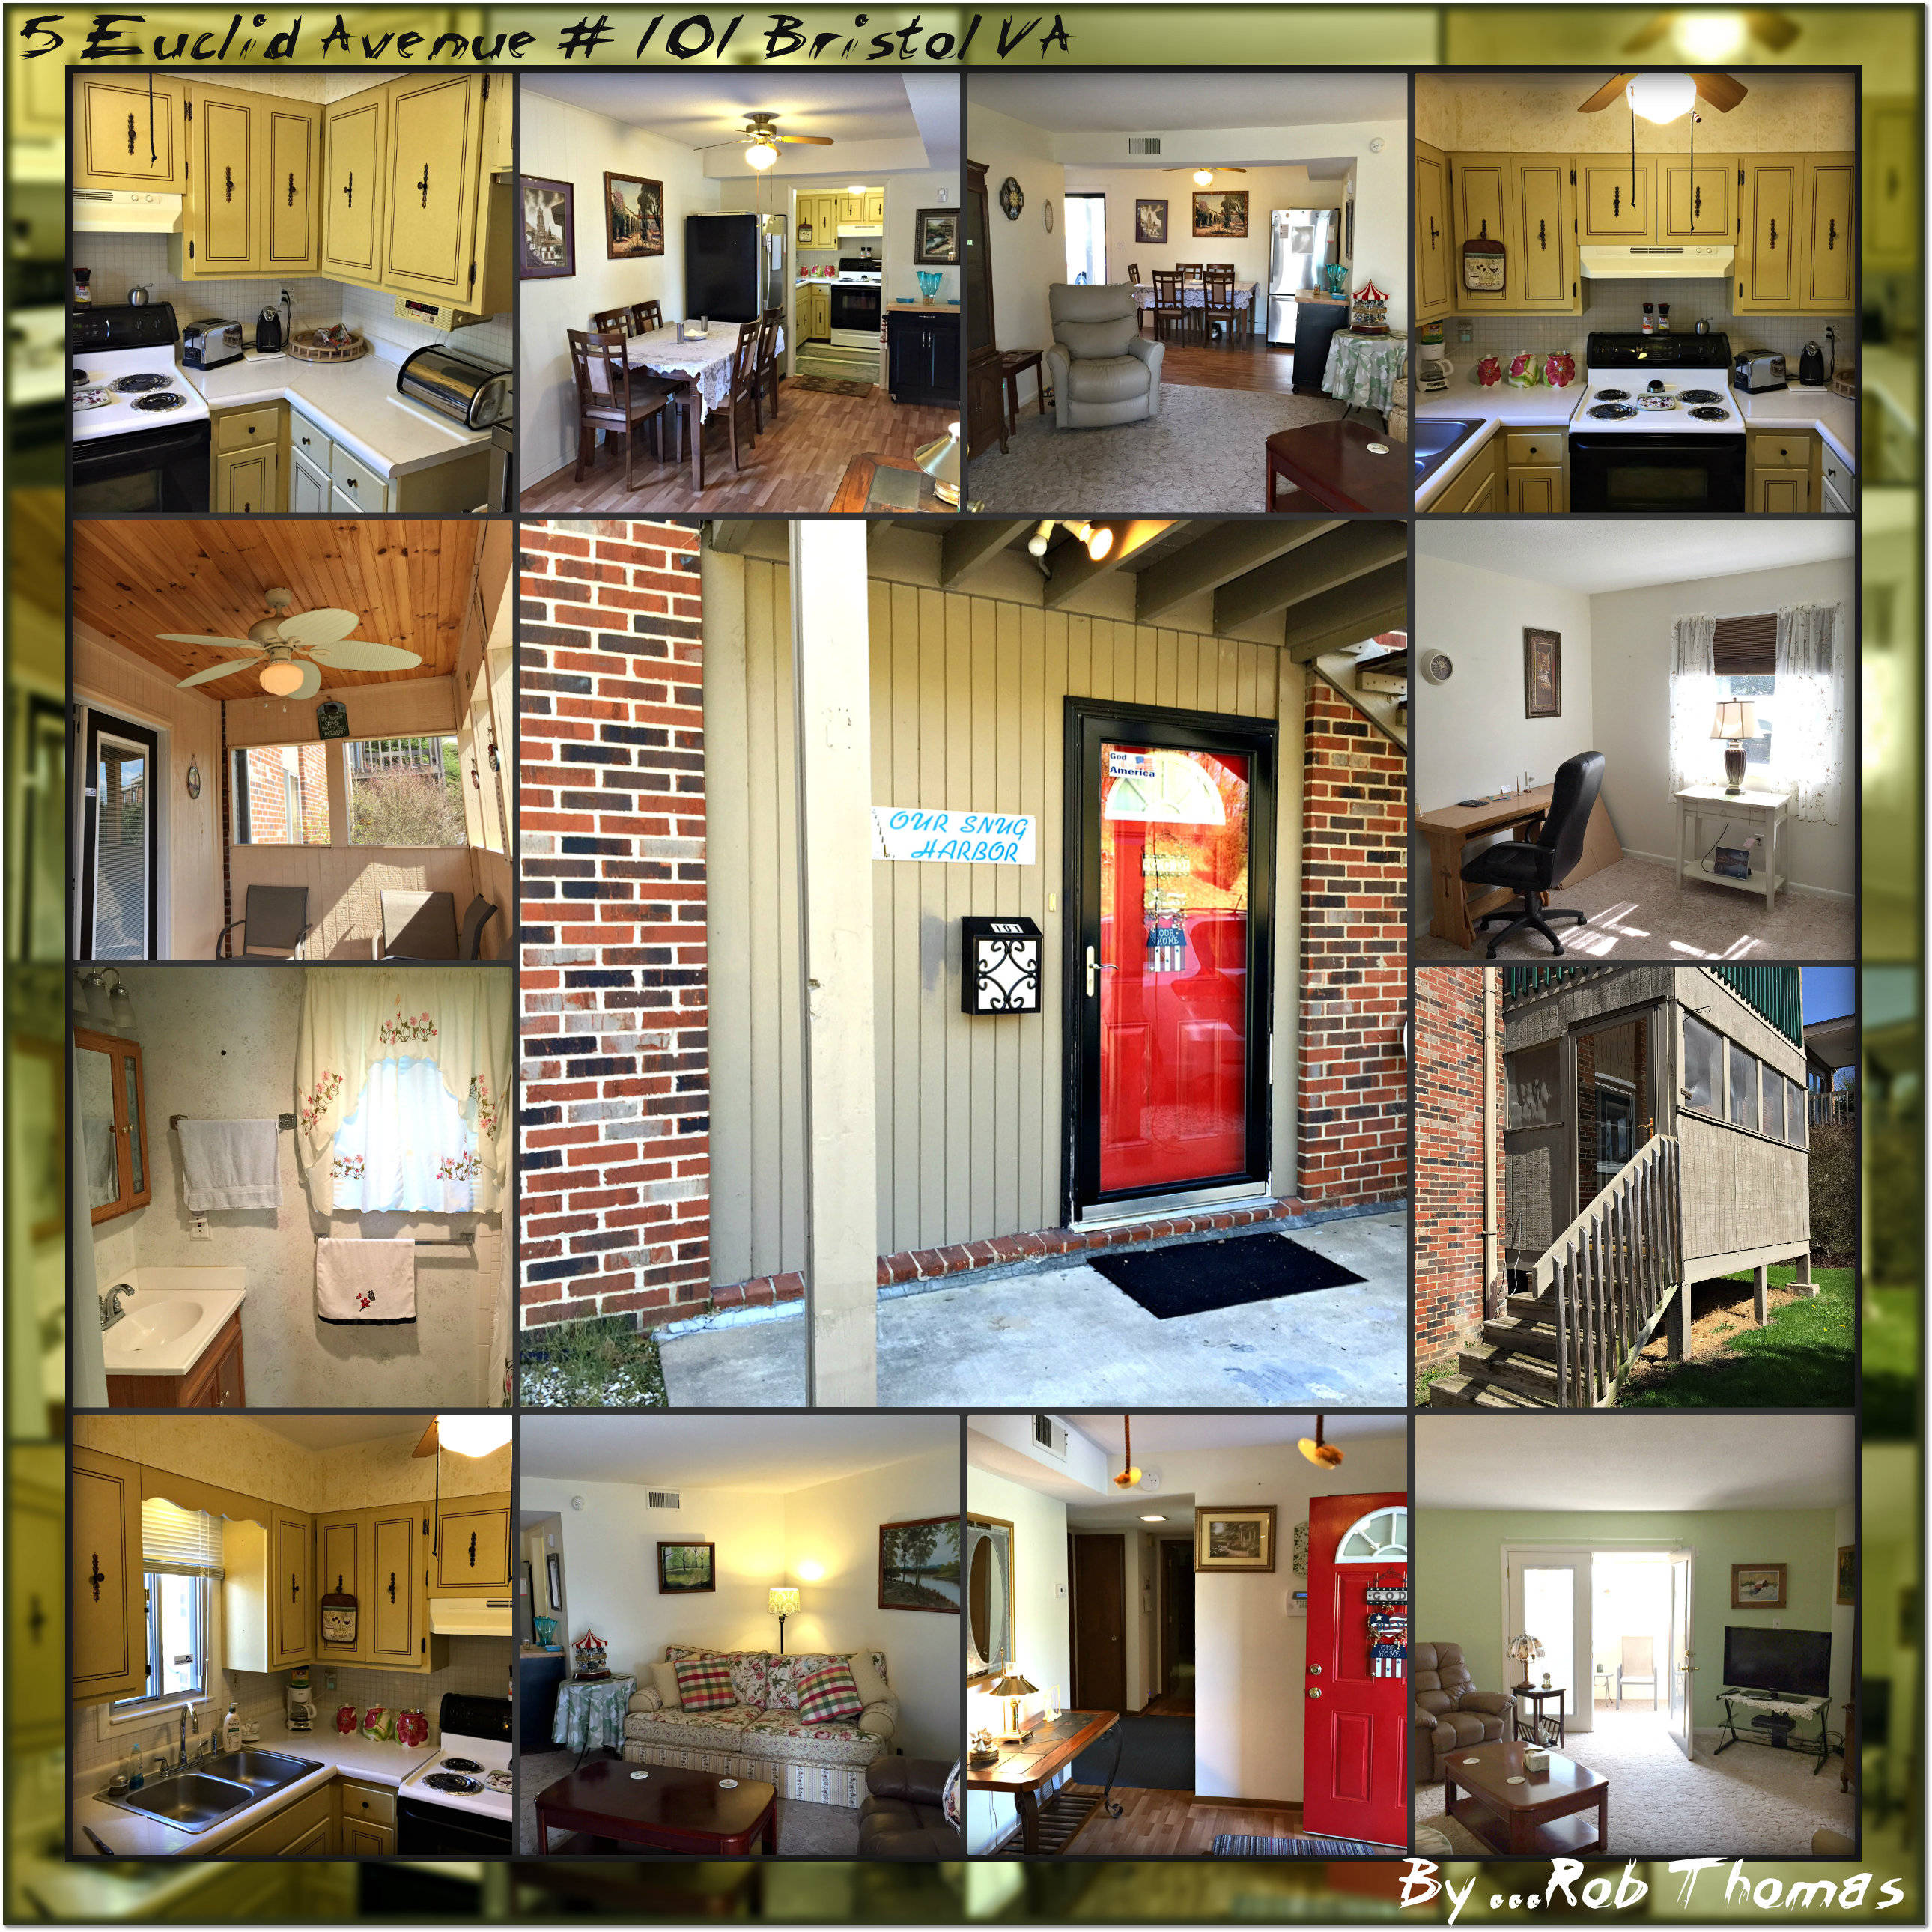 3 Bedroom~2Bath Condo For Sale In Bristol VA Just Reduc